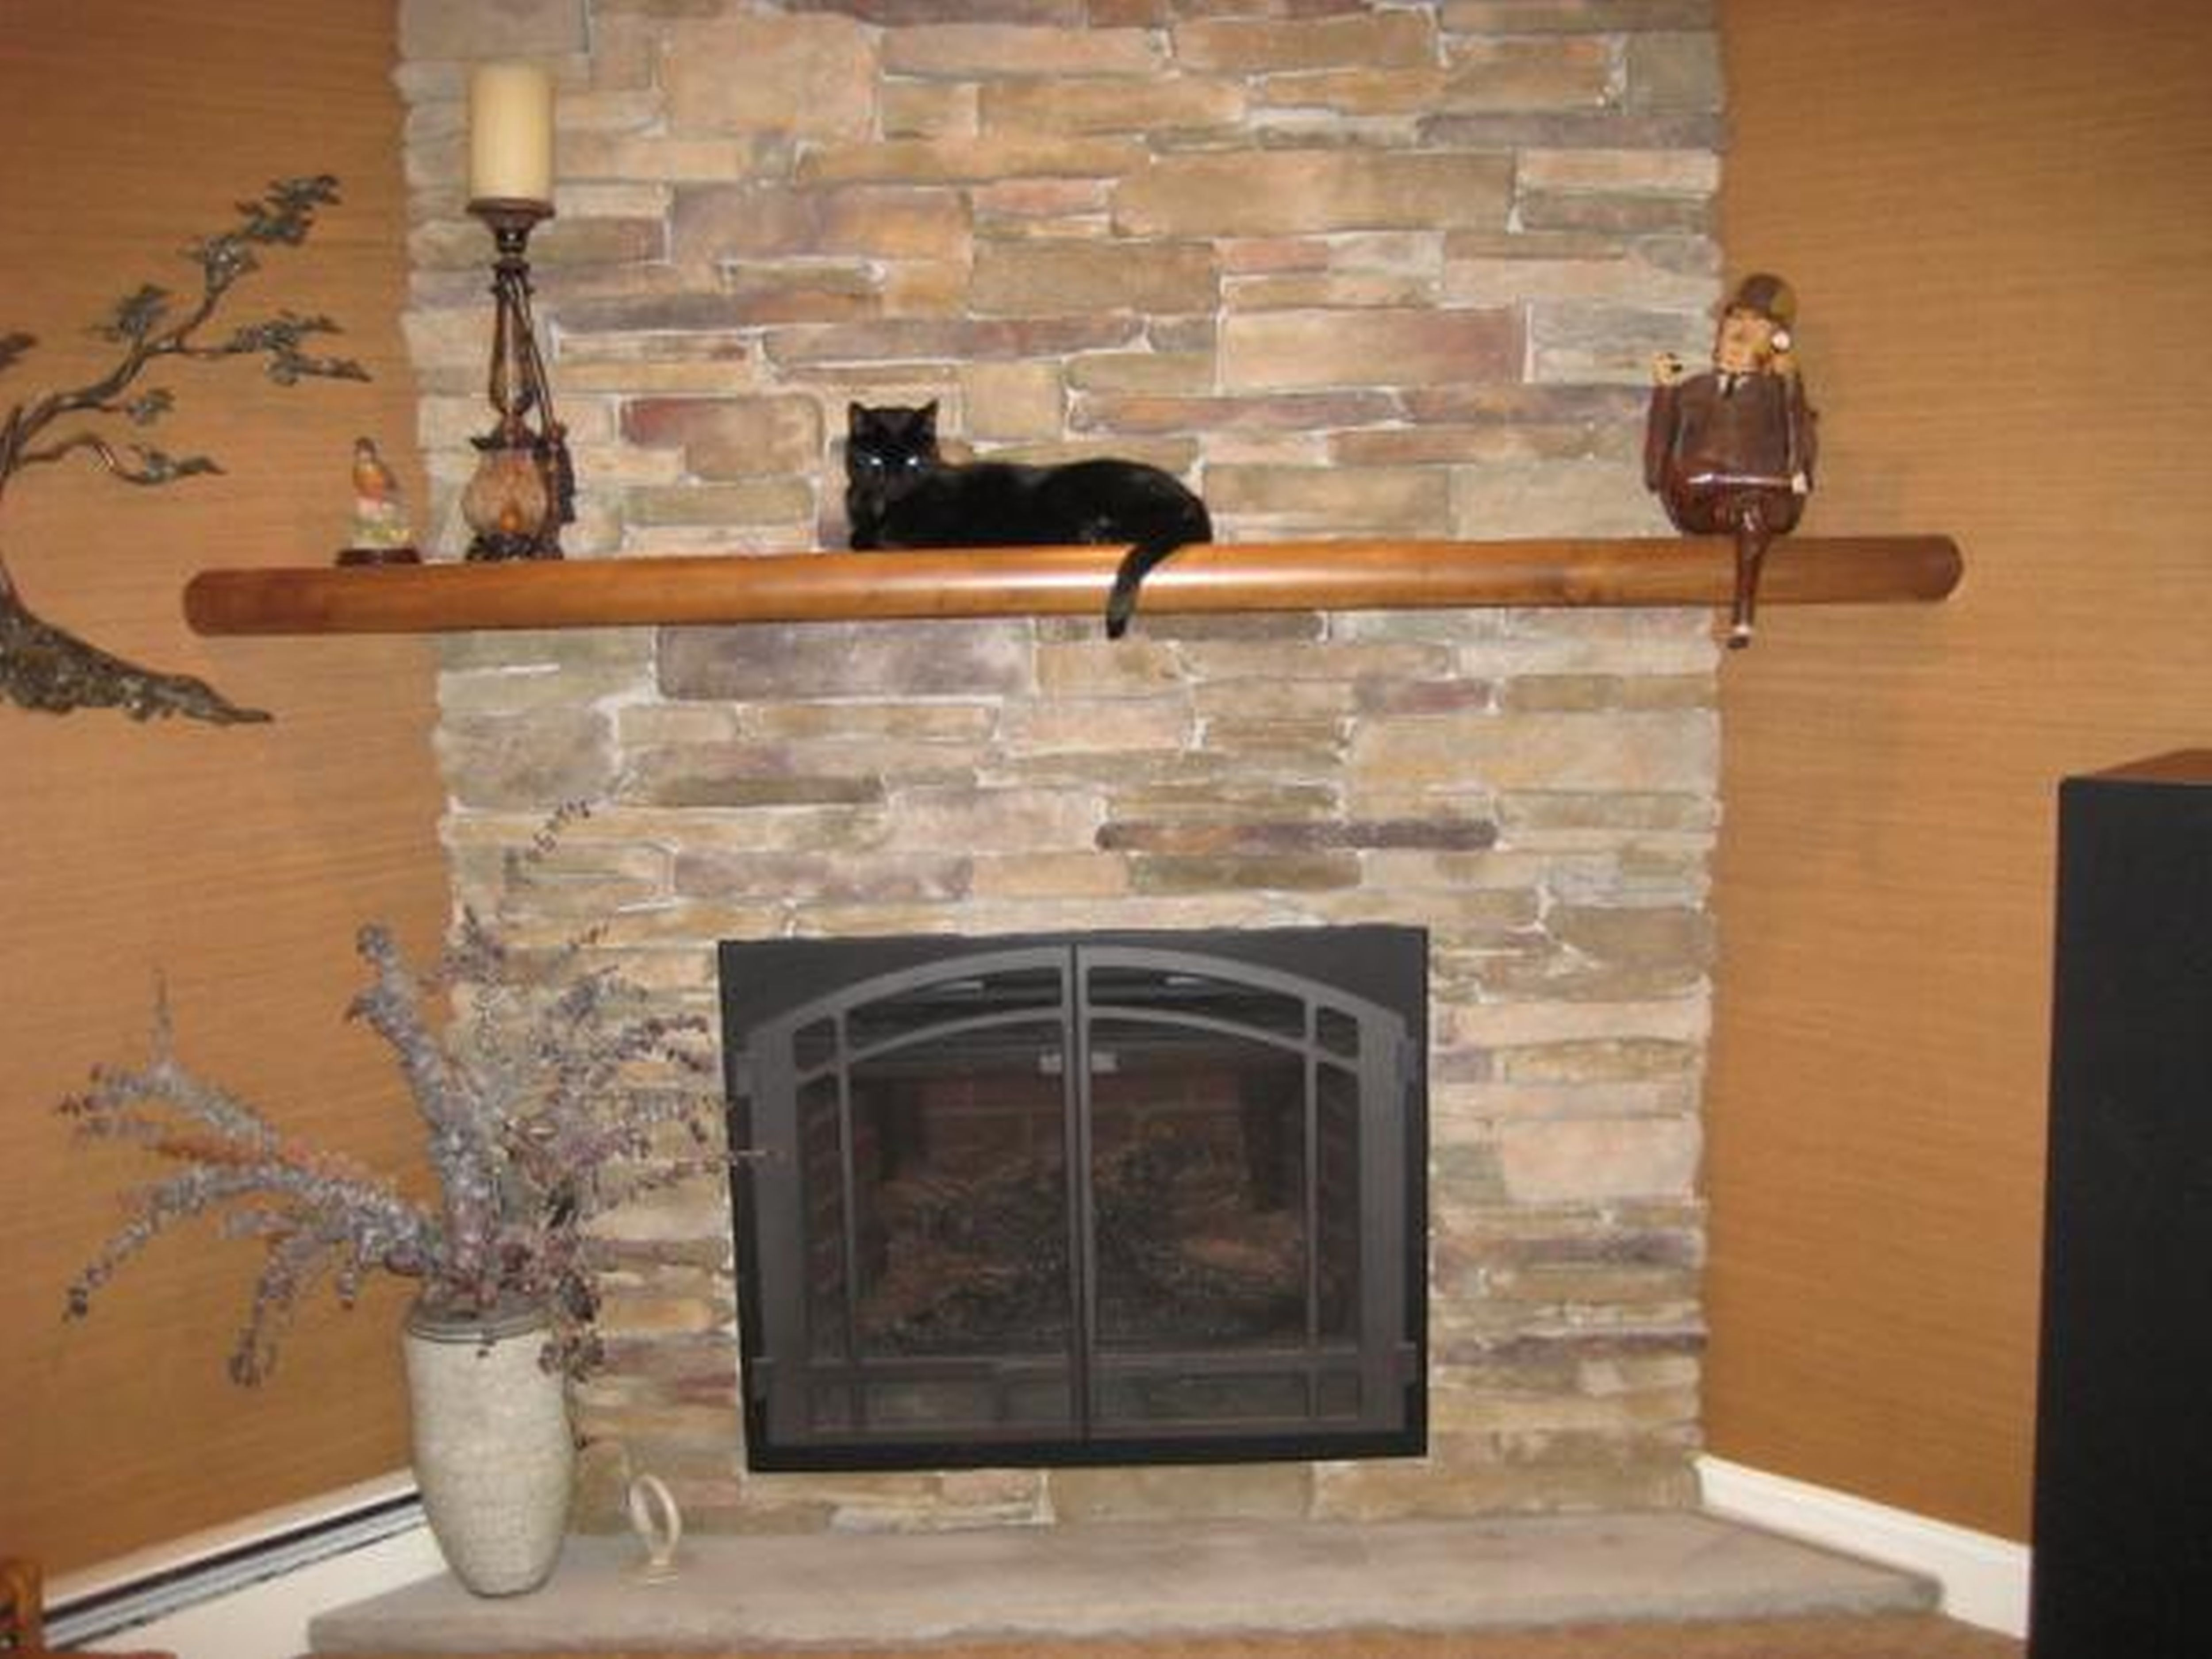 Firplace Mantels | Lowes Fireplace Mantel | Fireplace Casing